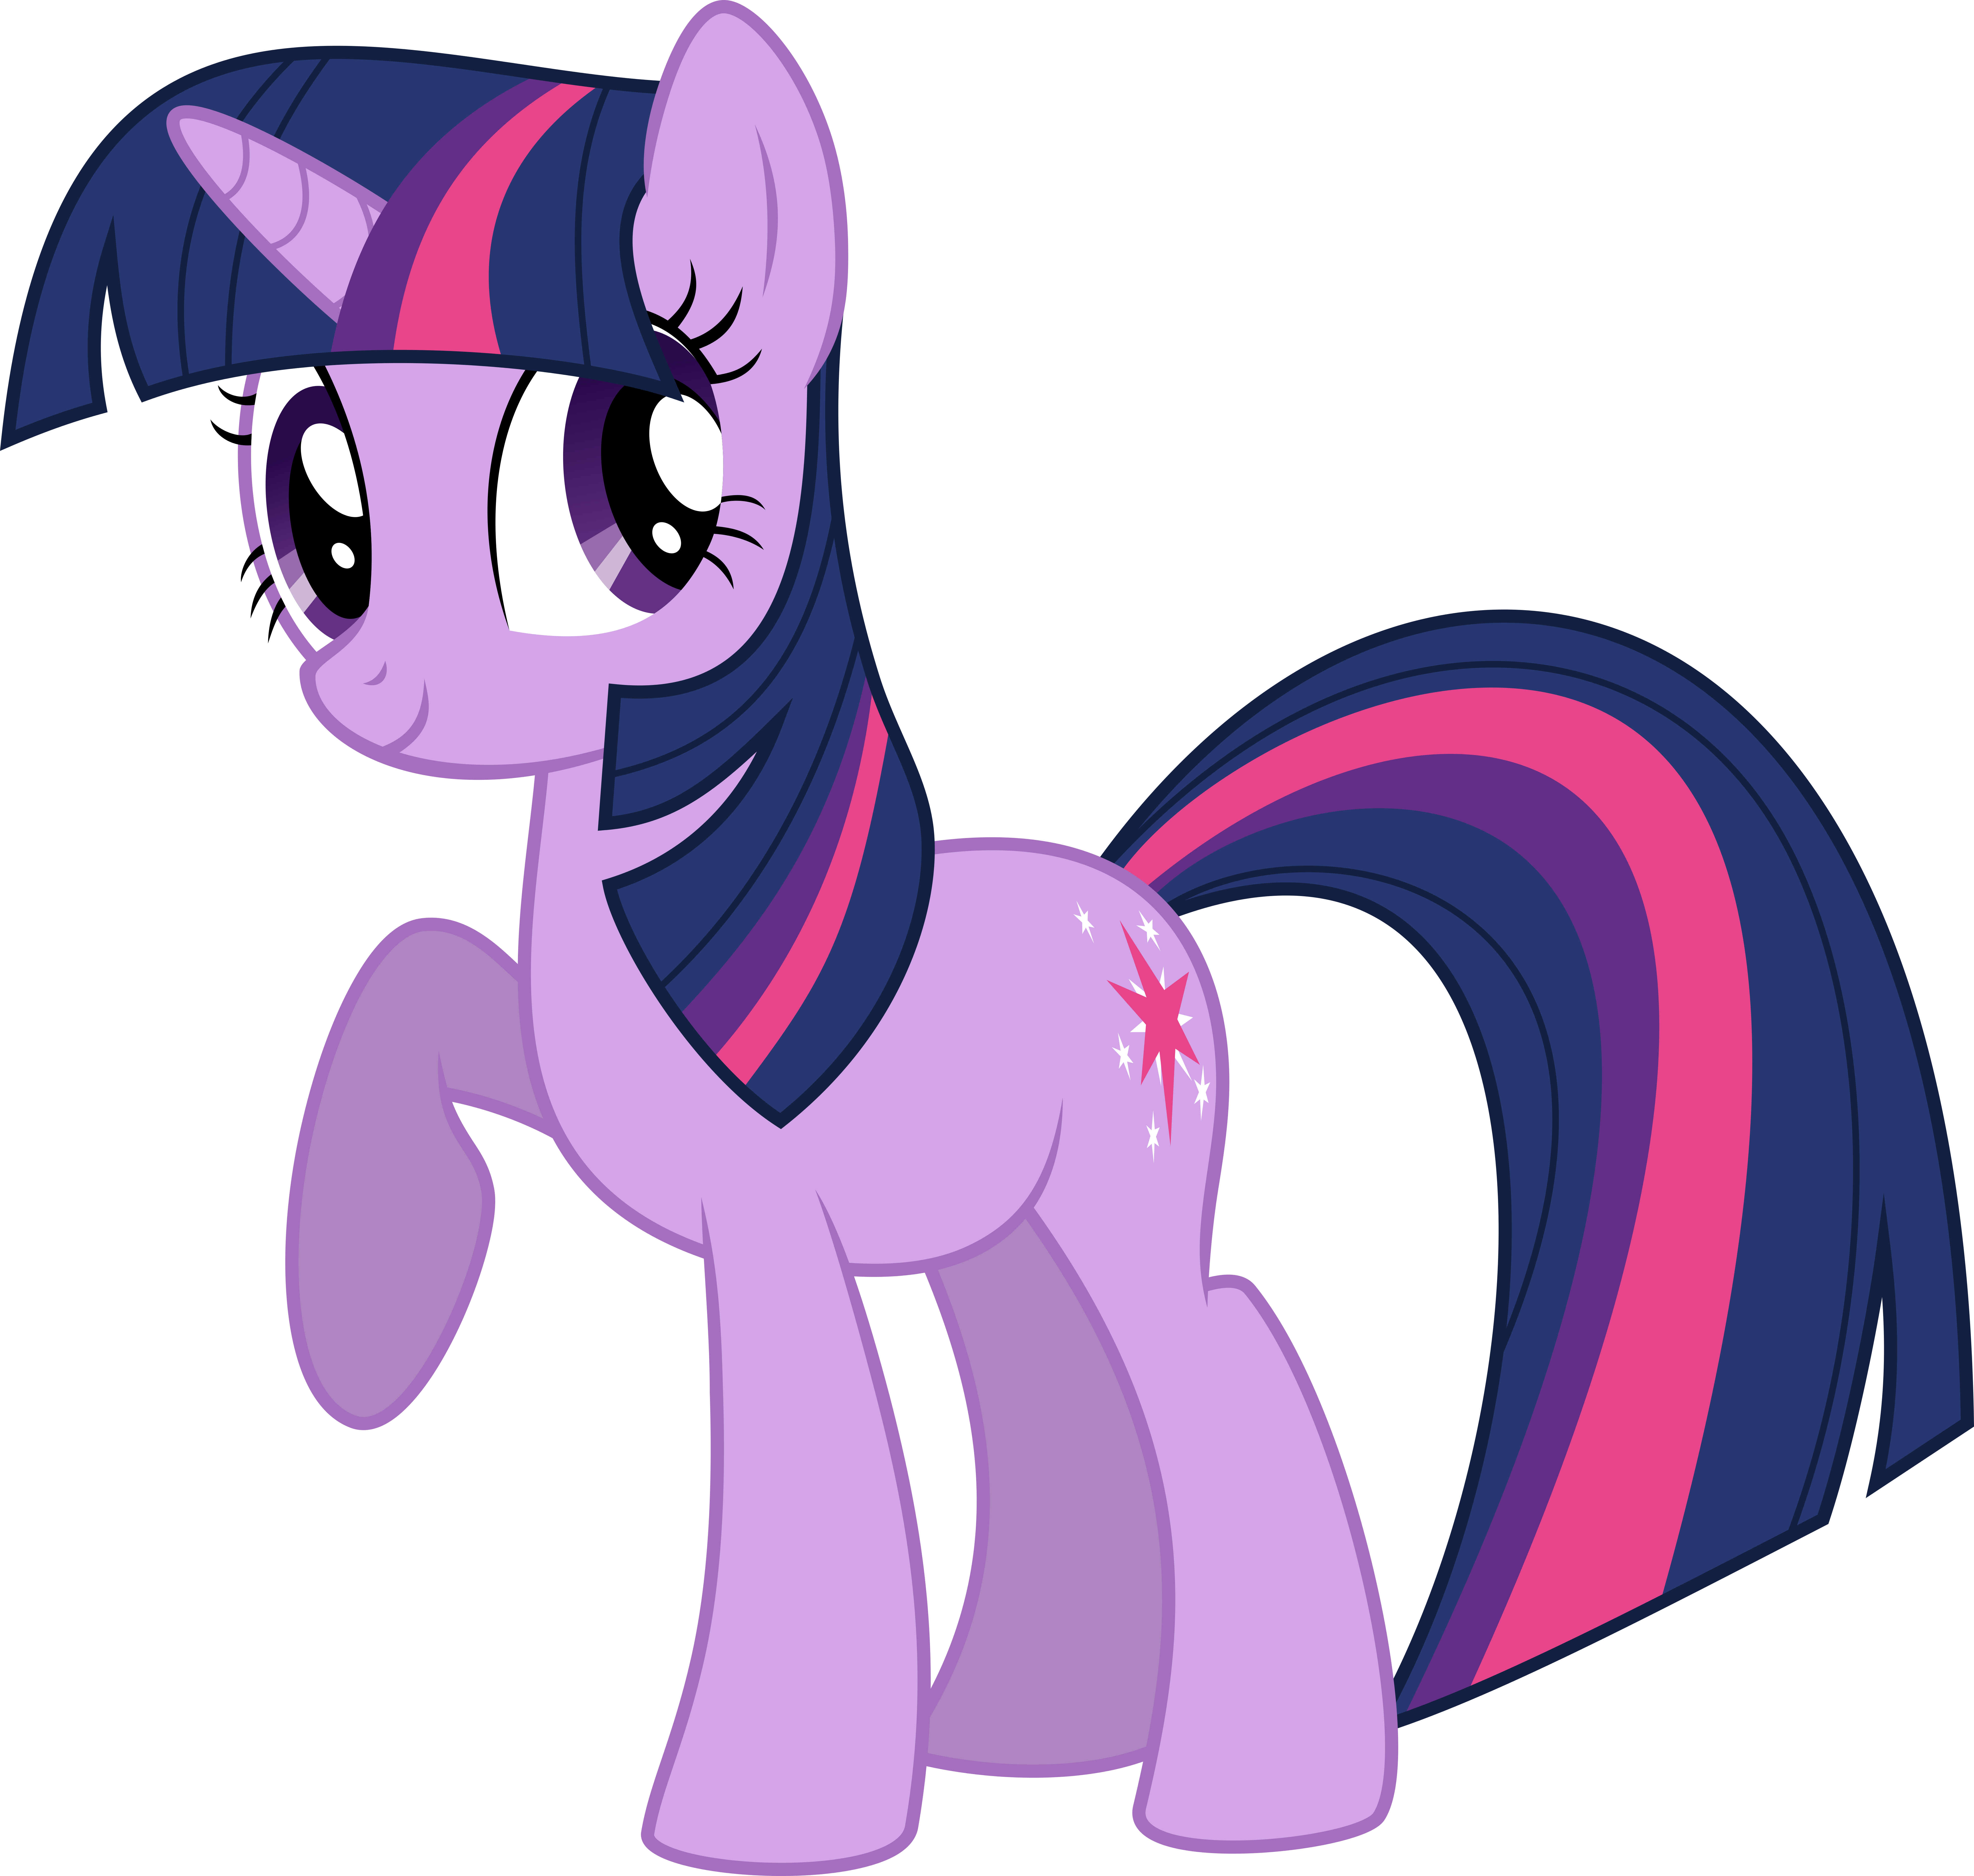 My Little Pony vector - surprised Twilight Sparkle by Krusiu42 on ...